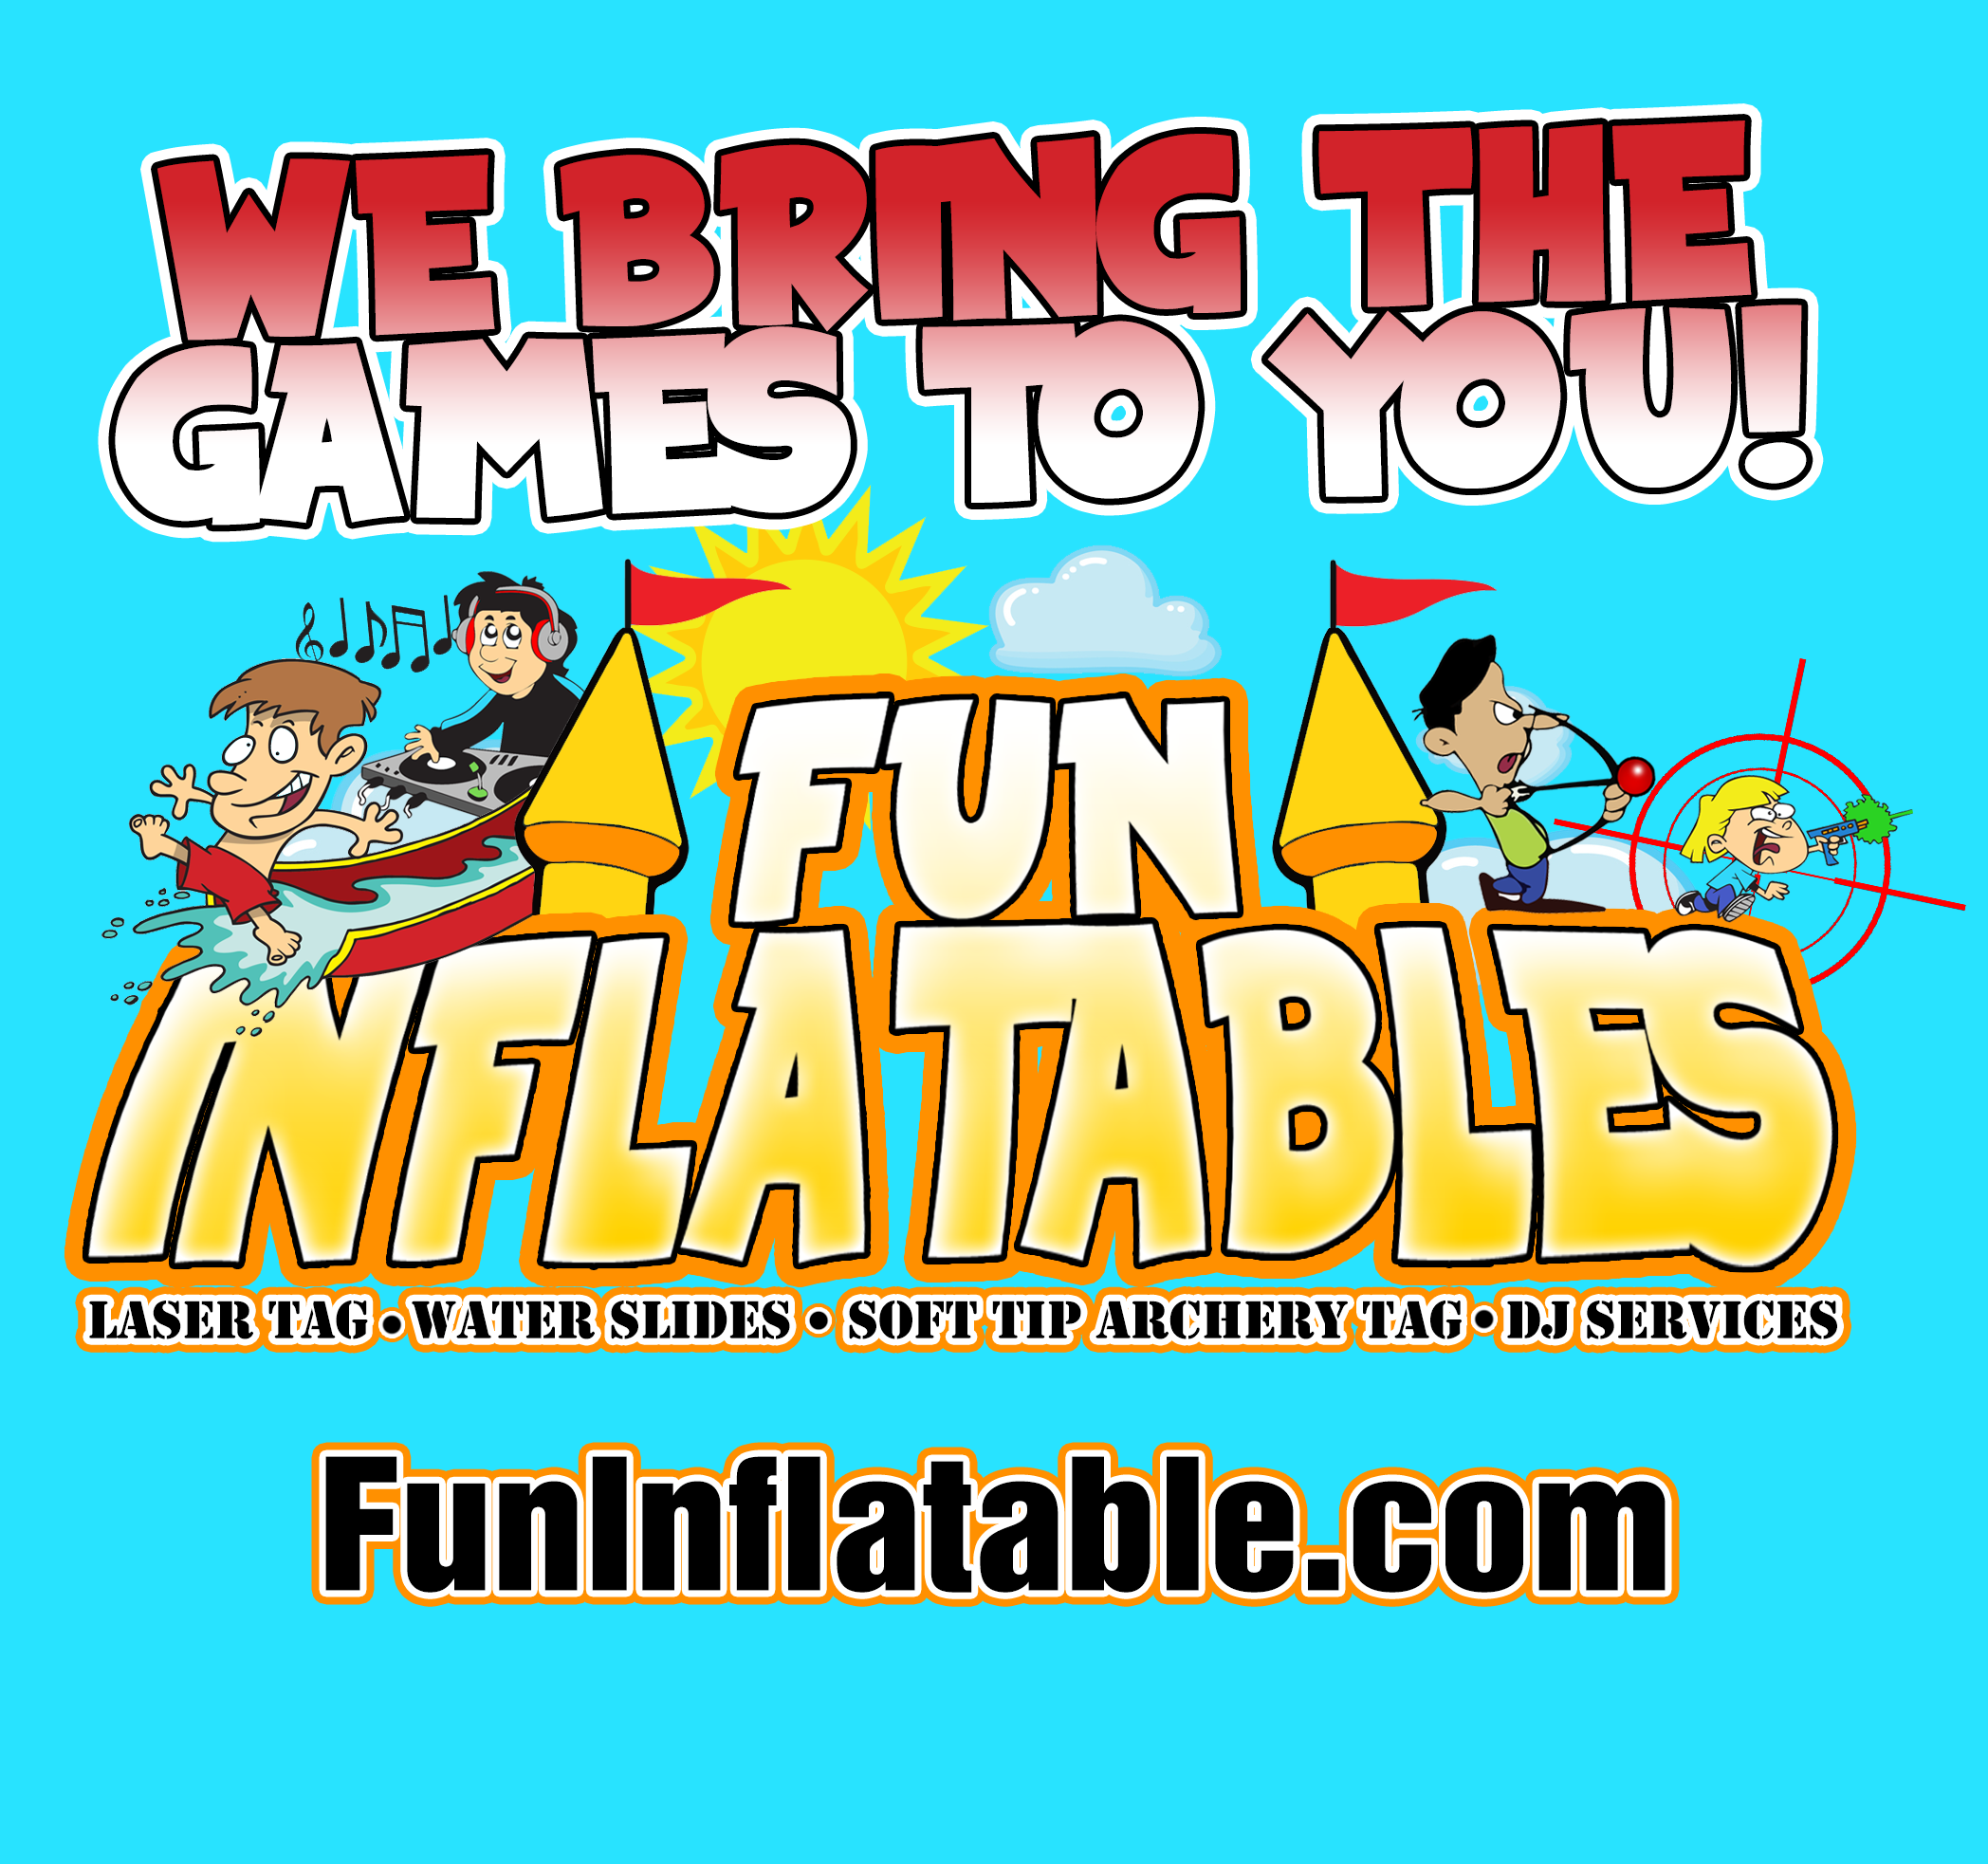 Fun Inflatables & DJ service & mobile Laser Tag  - Party Inflatables - Fort Worth, TX